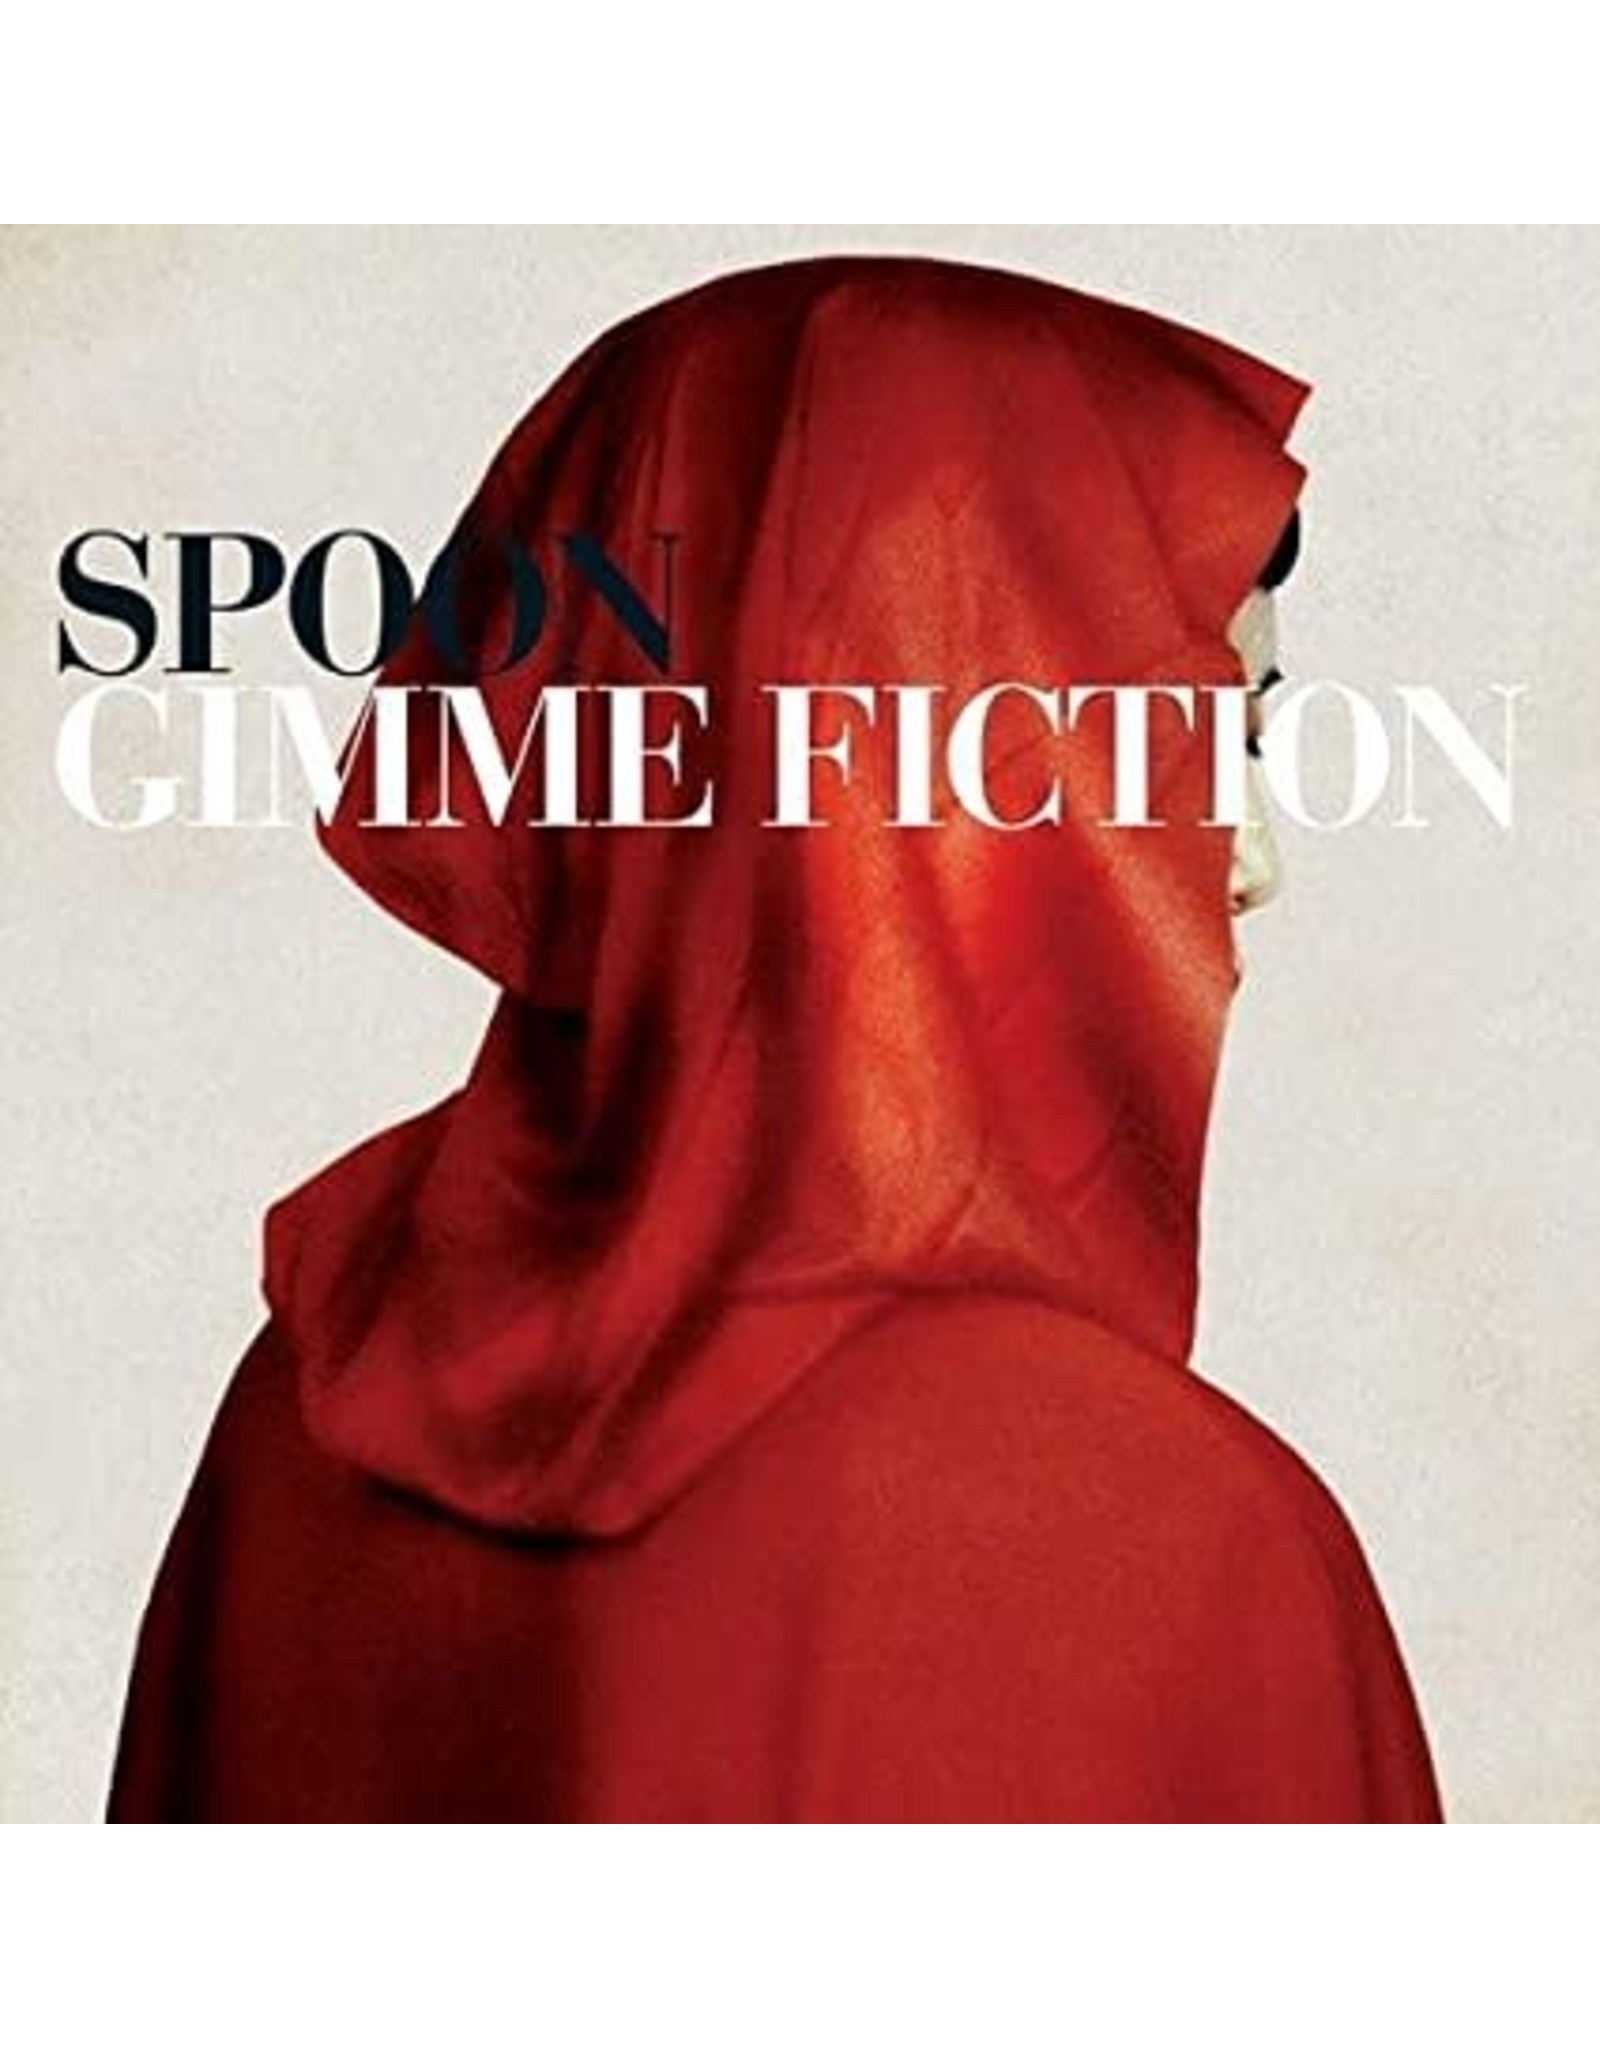 Spoon - Gimme Fiction 2LP Deluxe 180G 10 Year Anniv.